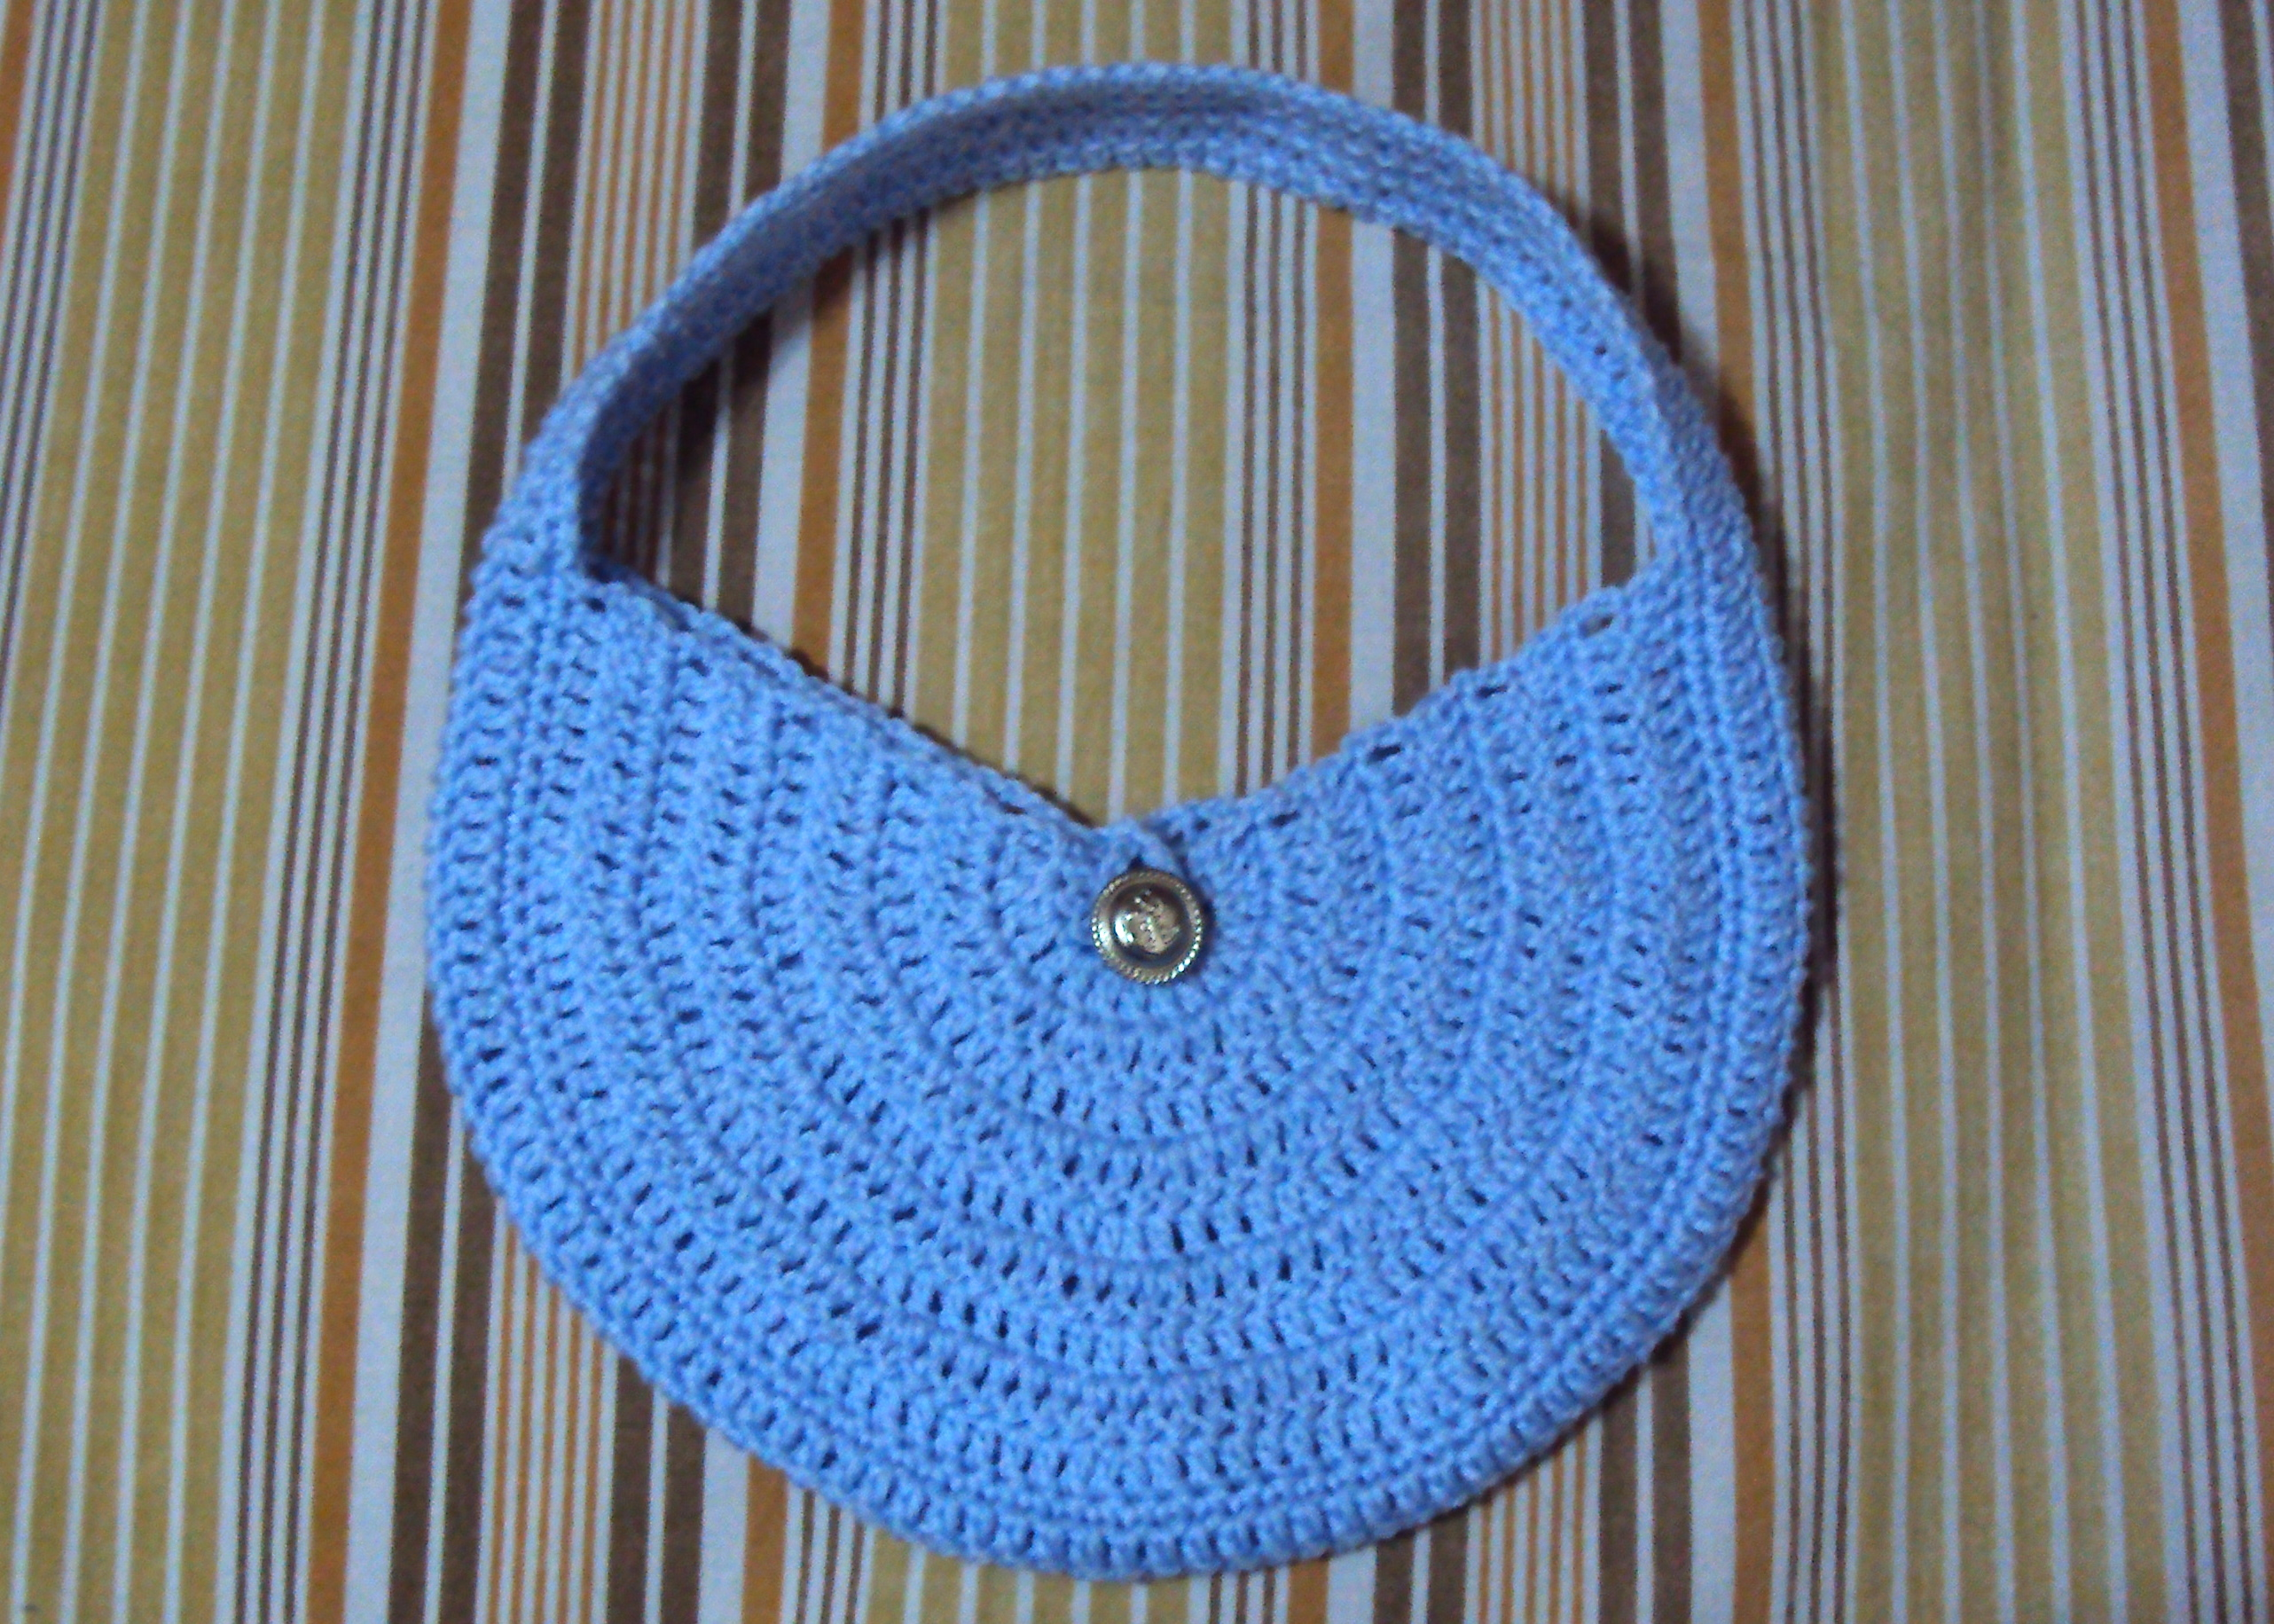 CROCHET HANDBAG PATTERNS - Browse Patterns